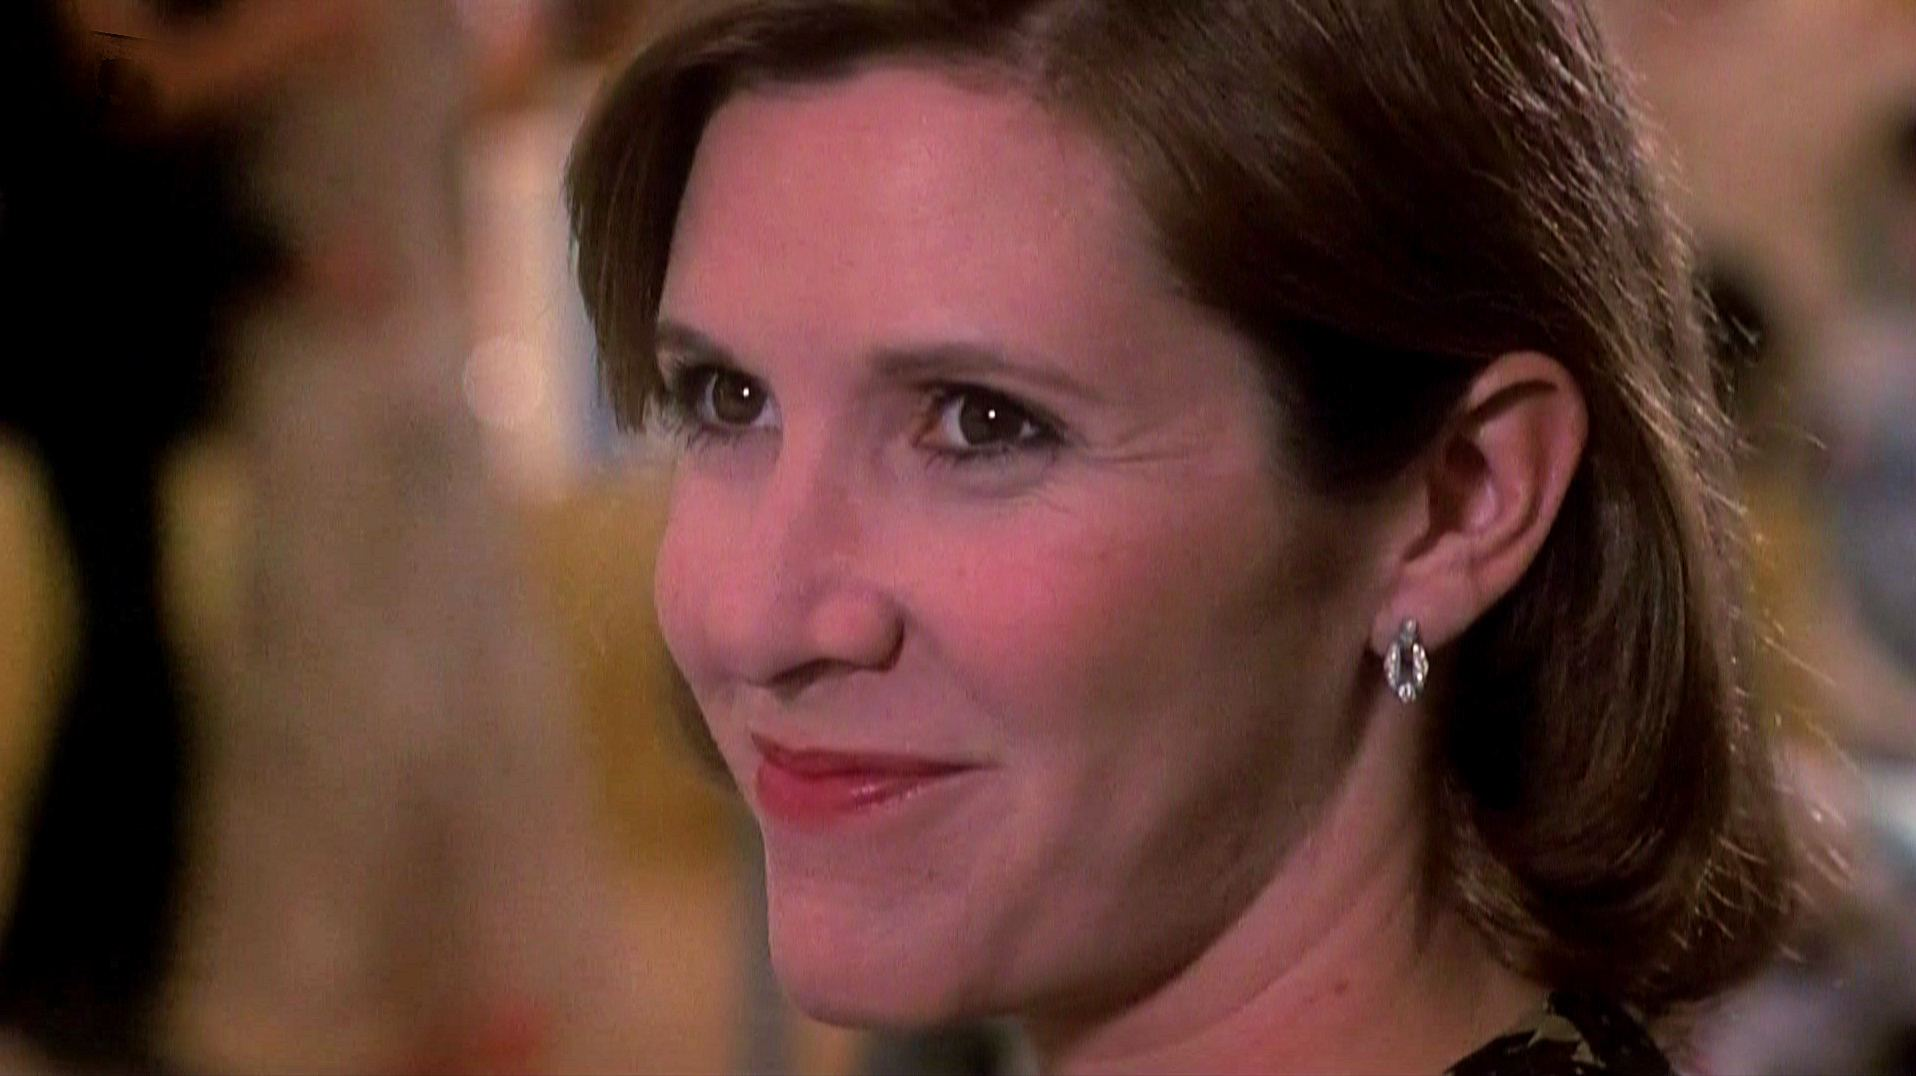 Screenshot from Appointment with Death (1988) (9) featuring Carrie Fisher